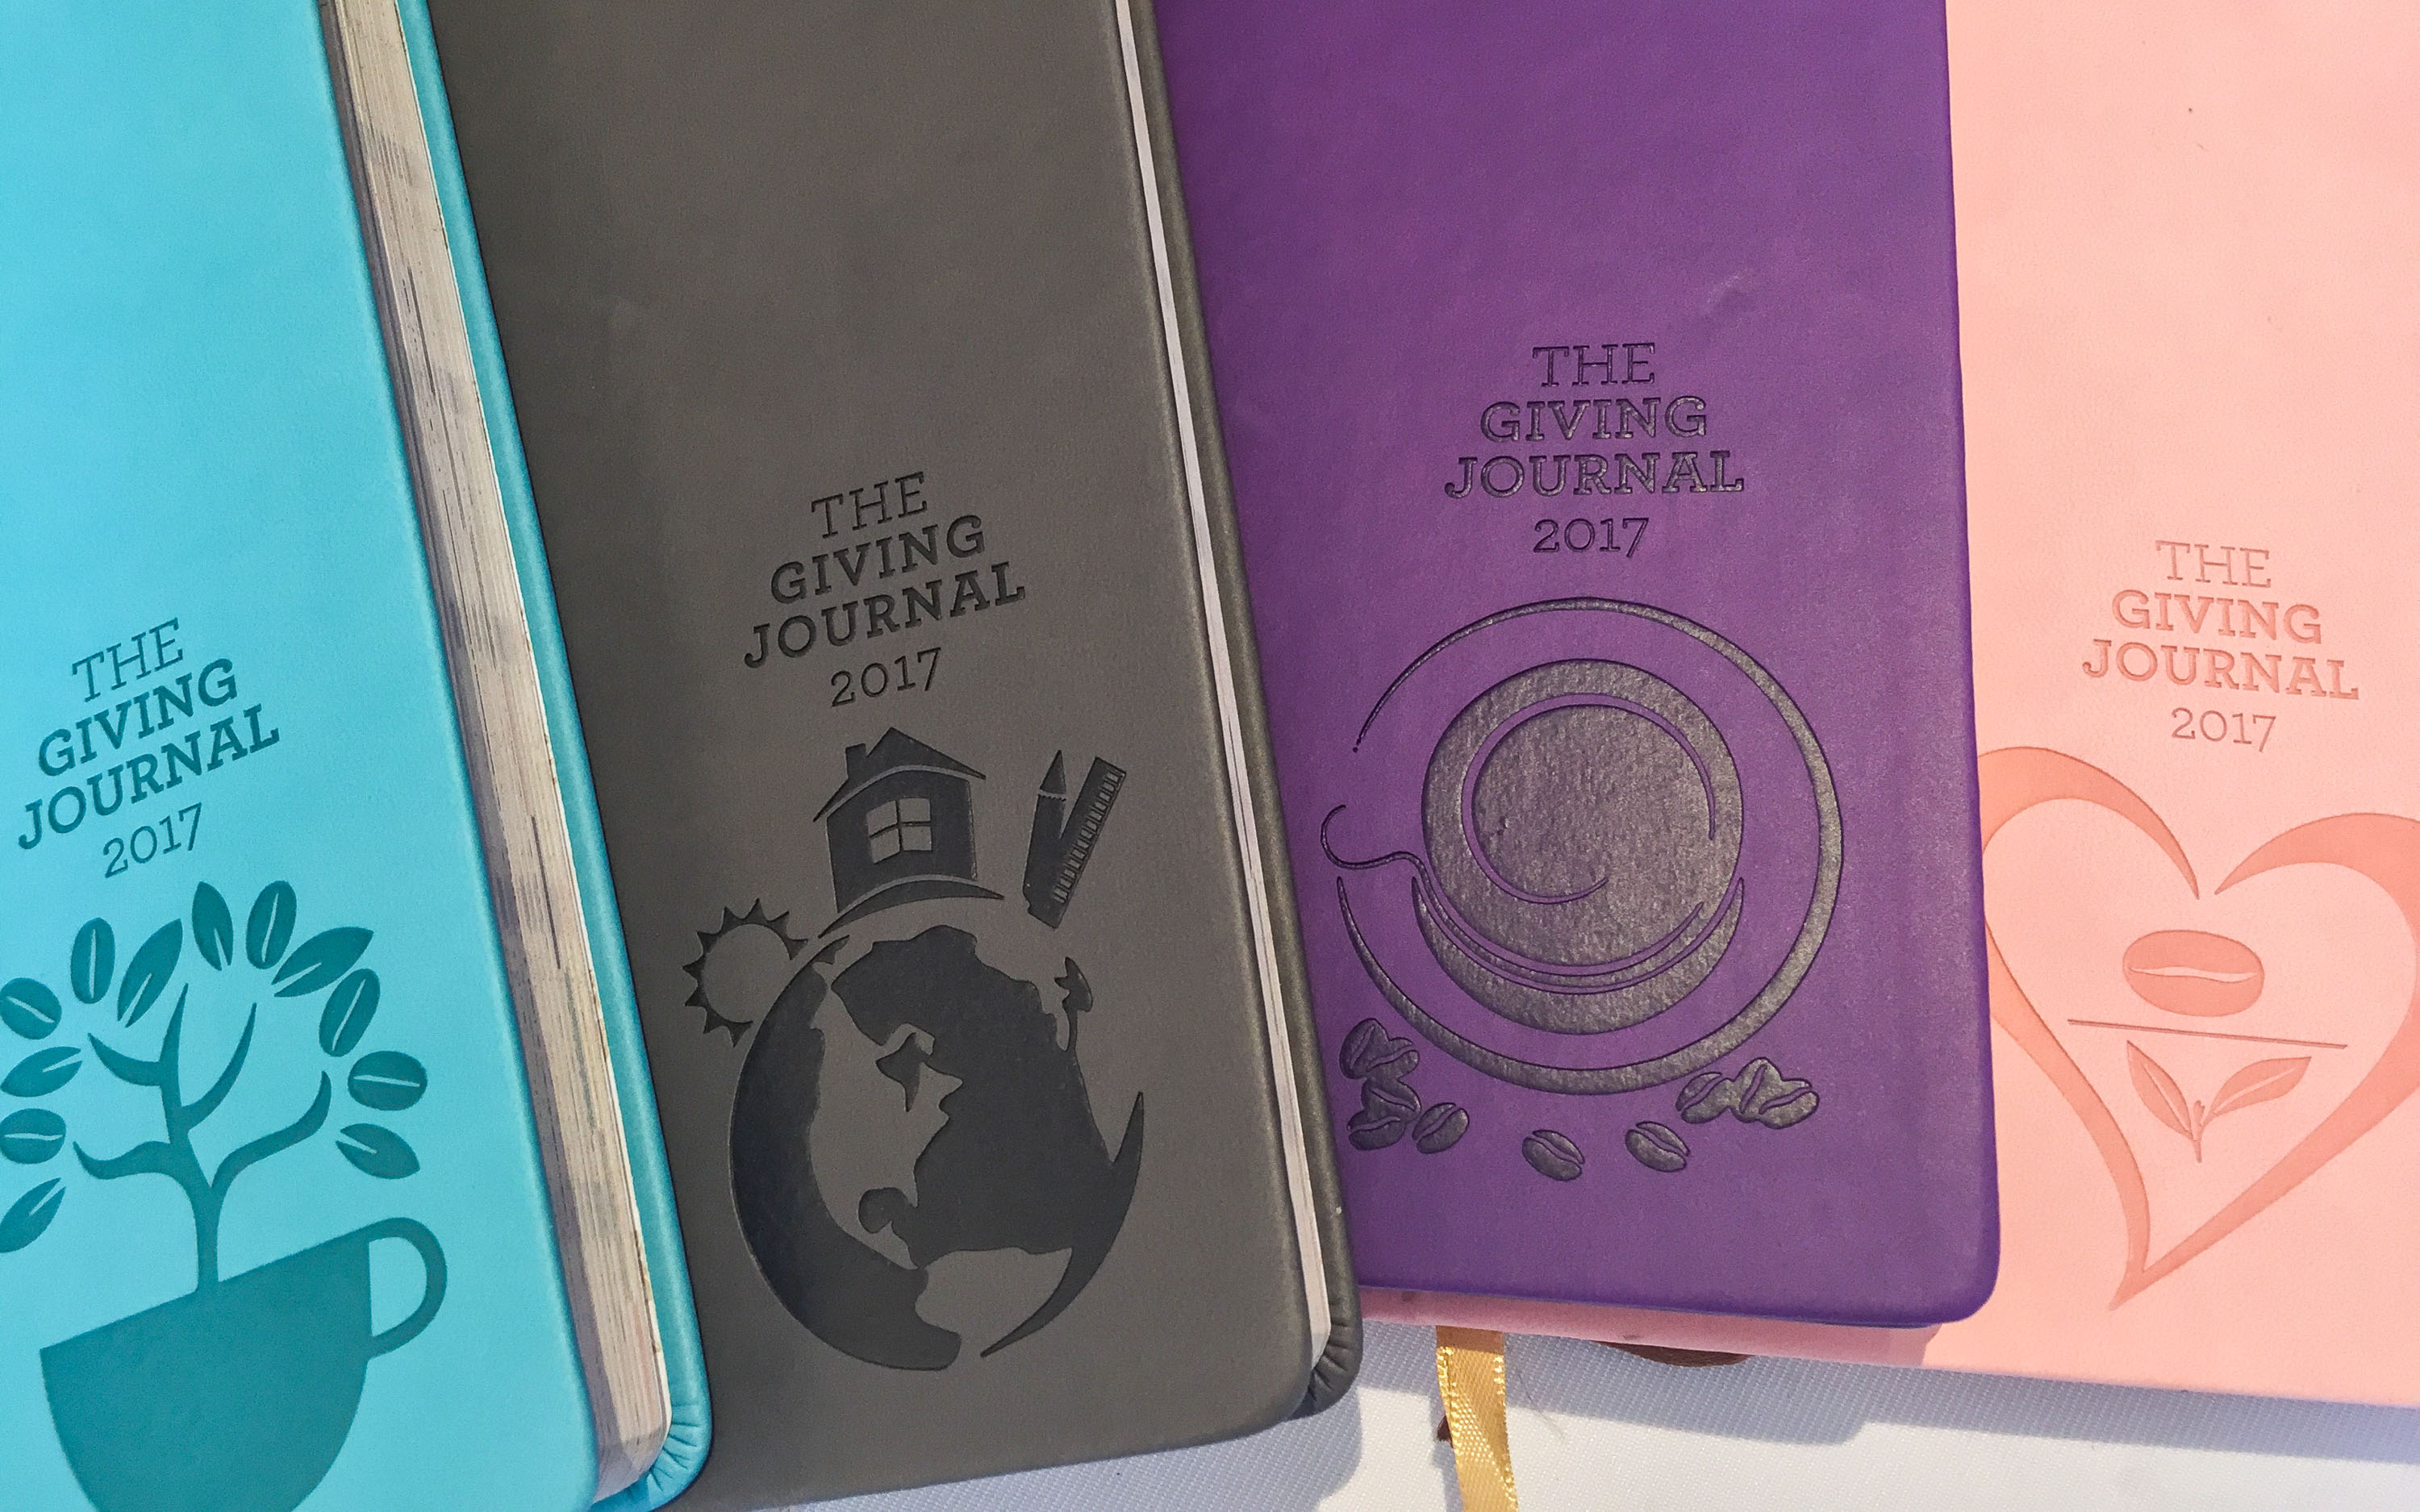 GIVING JOURNAL 2017. Customers can start collecting stamps for Coffee Bean u0026 Tea Leaf's planners on October 22, 2016. Photo by Vernise L. Tantuco/Rappler